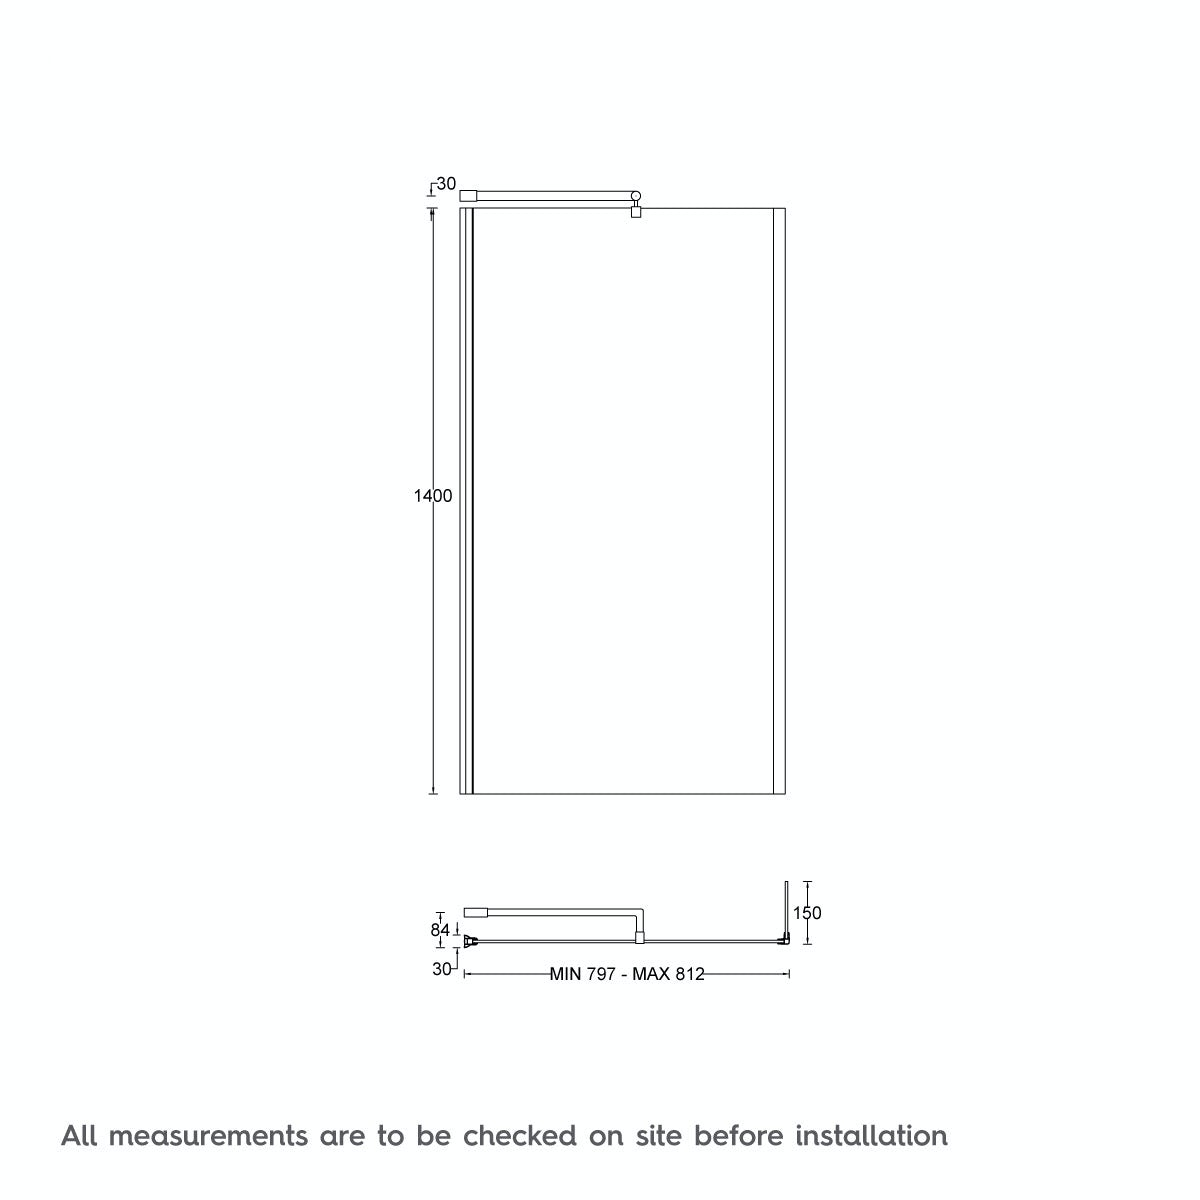 Dimensions for L shaped left handed 12 jet whirlpool shower bath with front panel and screen